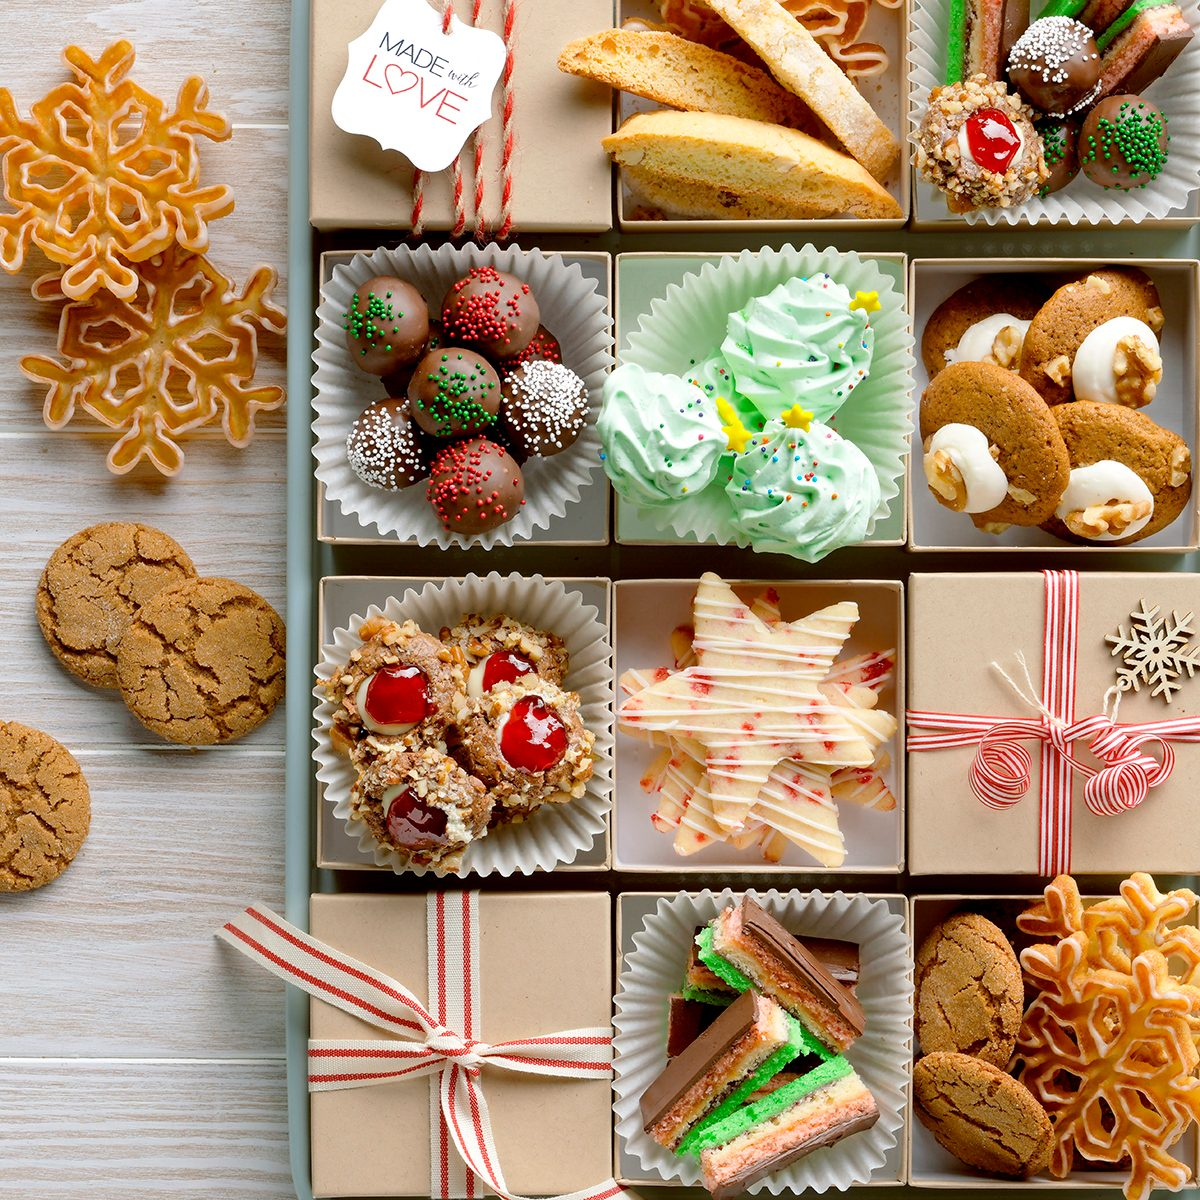 Today S Home Bakers Share Their Secrets To The Best Cookie Platters Ever